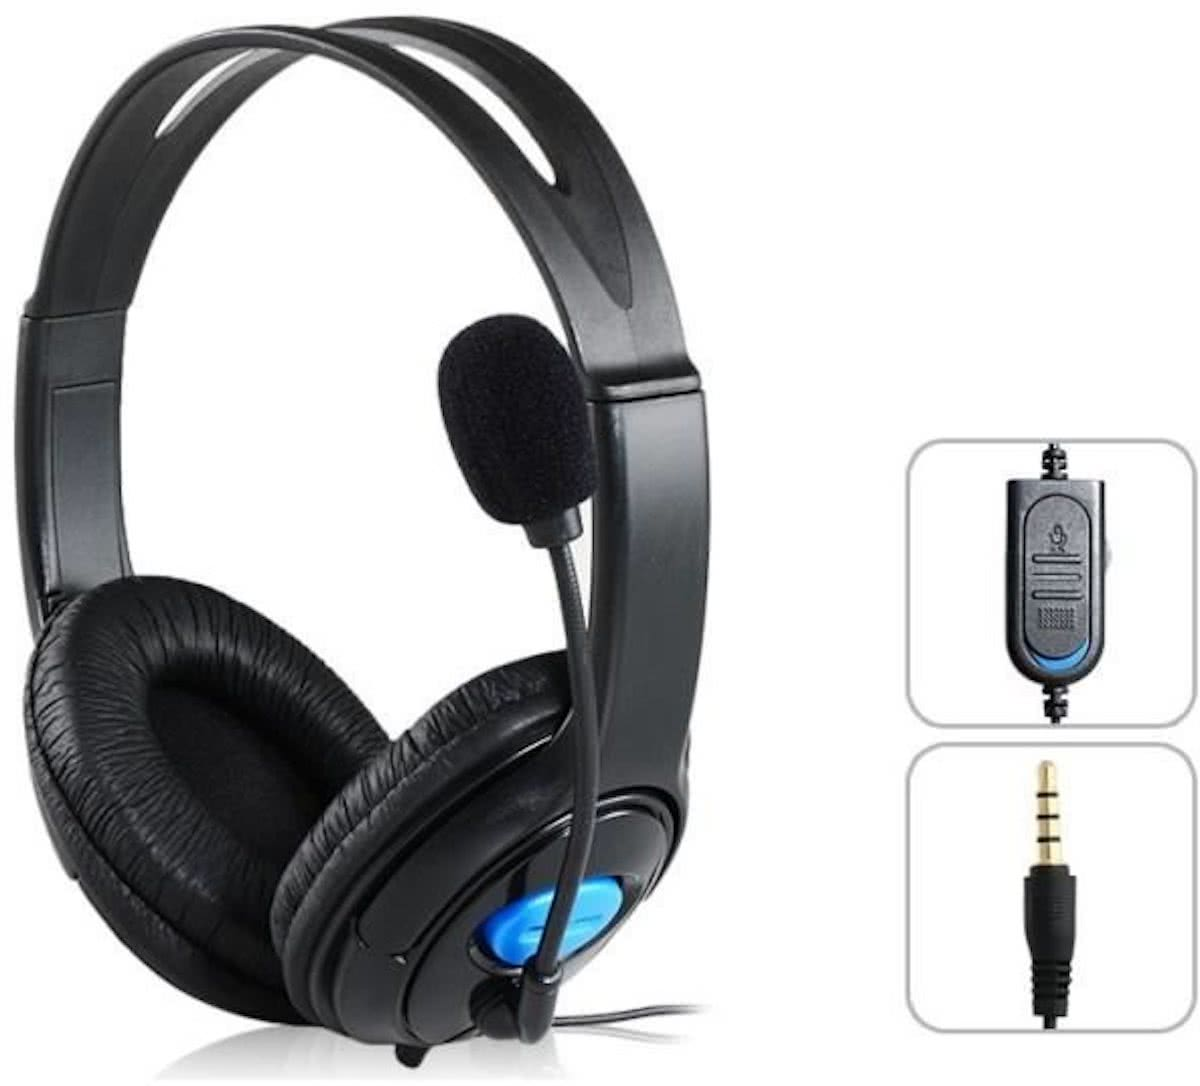 Under Control PS4 / Xone Gaming Headset